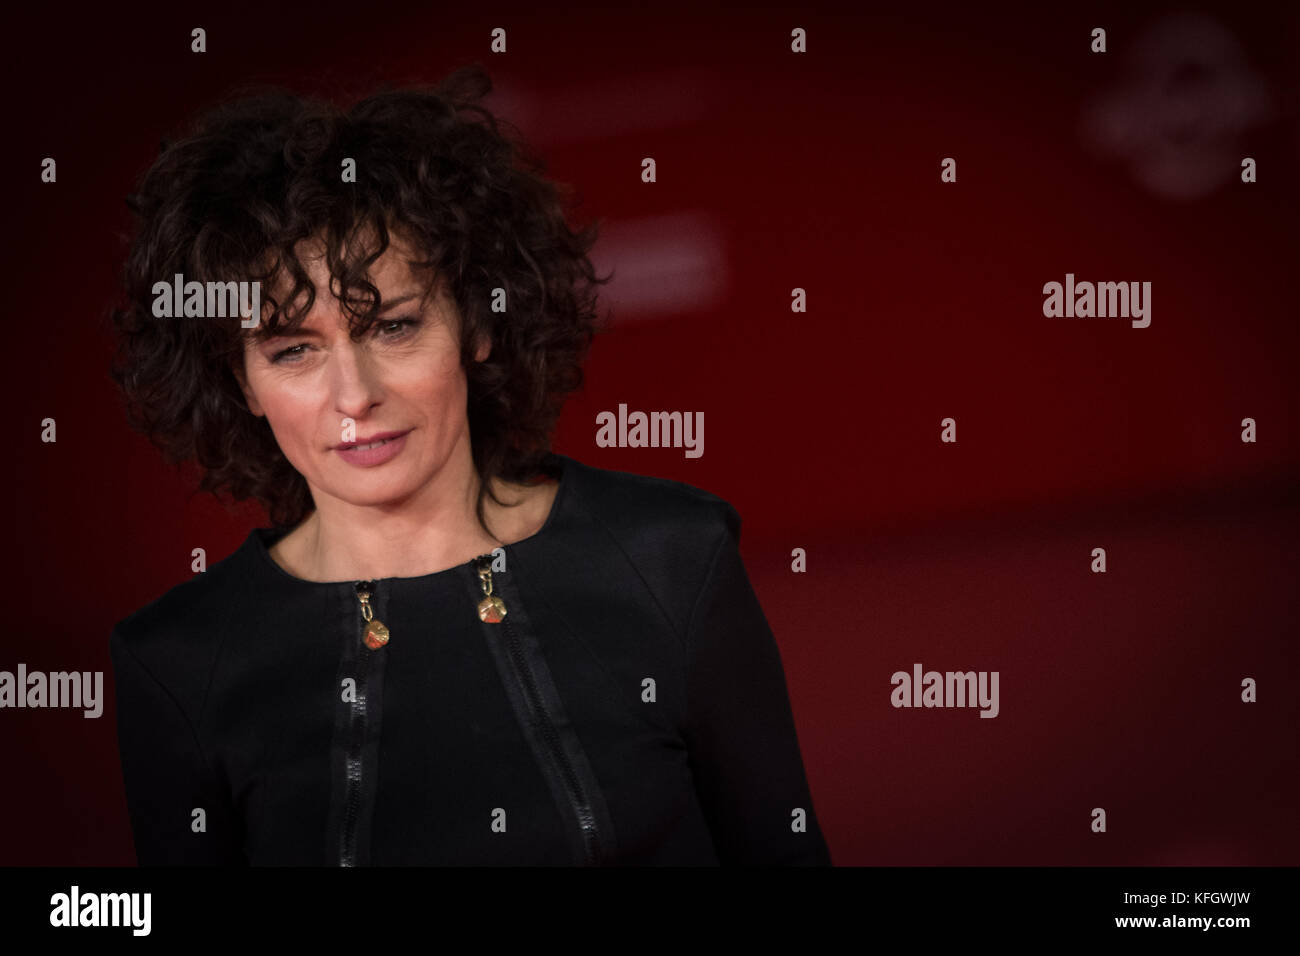 Rome, Italy. 28th Oct, 2017. Rome, Italy October 28, 2017, Lidia Vitale walks a red carpet for 'Stronger' - Stock Image